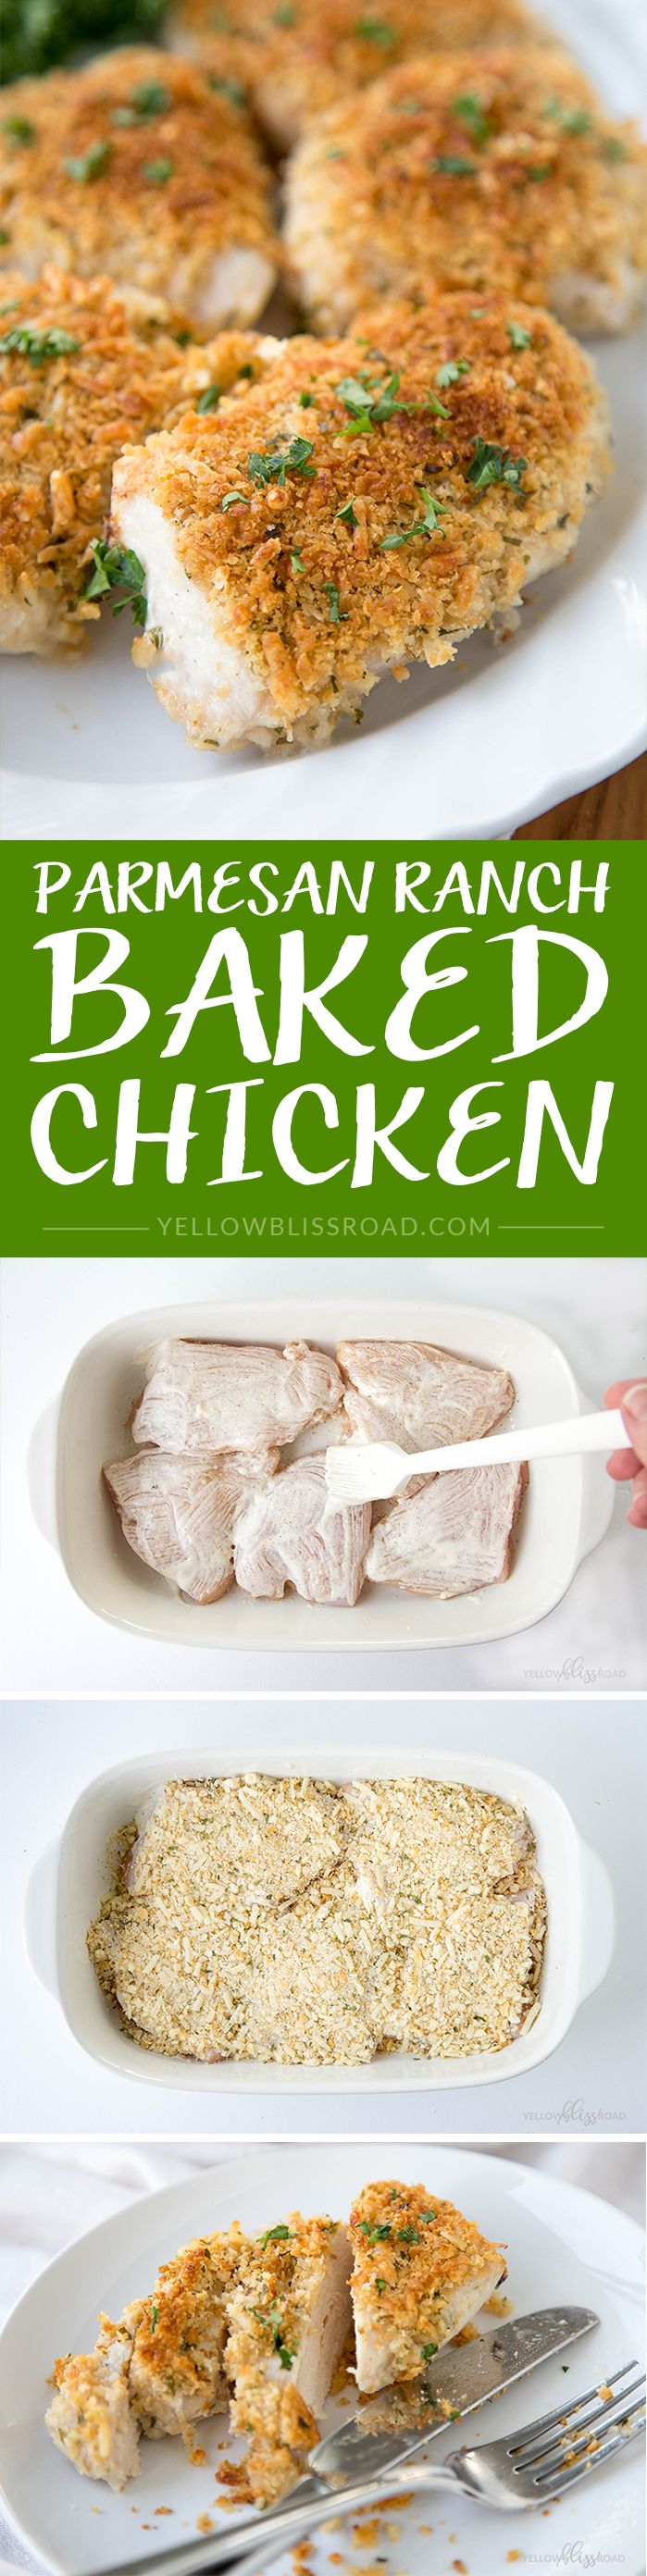 The Best Baked Chicken Tenderloins Recipes on Yummly | Baked